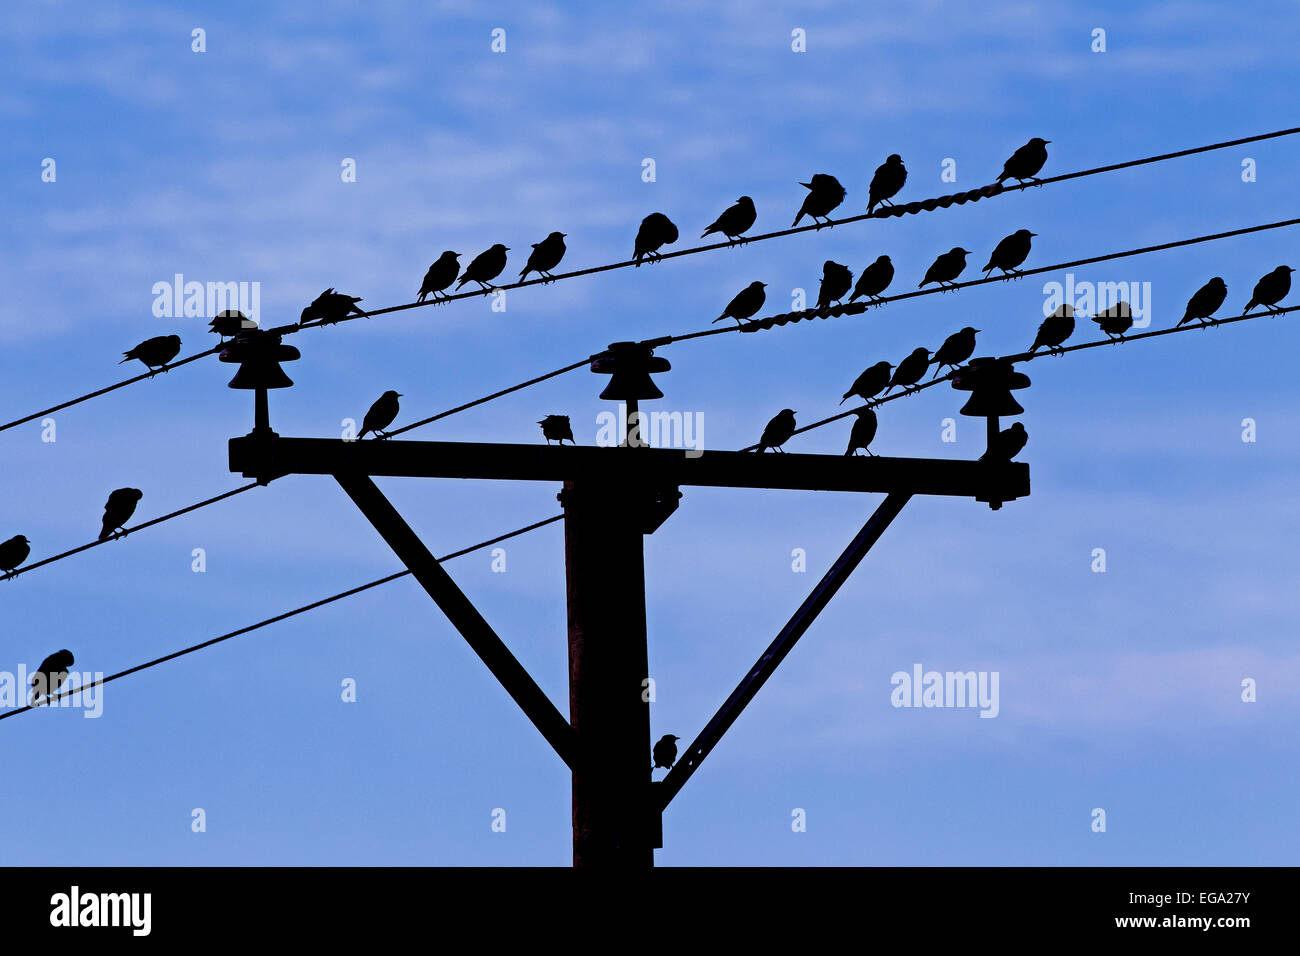 Common starlings / European starling (Sturnus vulgaris) flock congregating on wires of telephone line - Stock Image